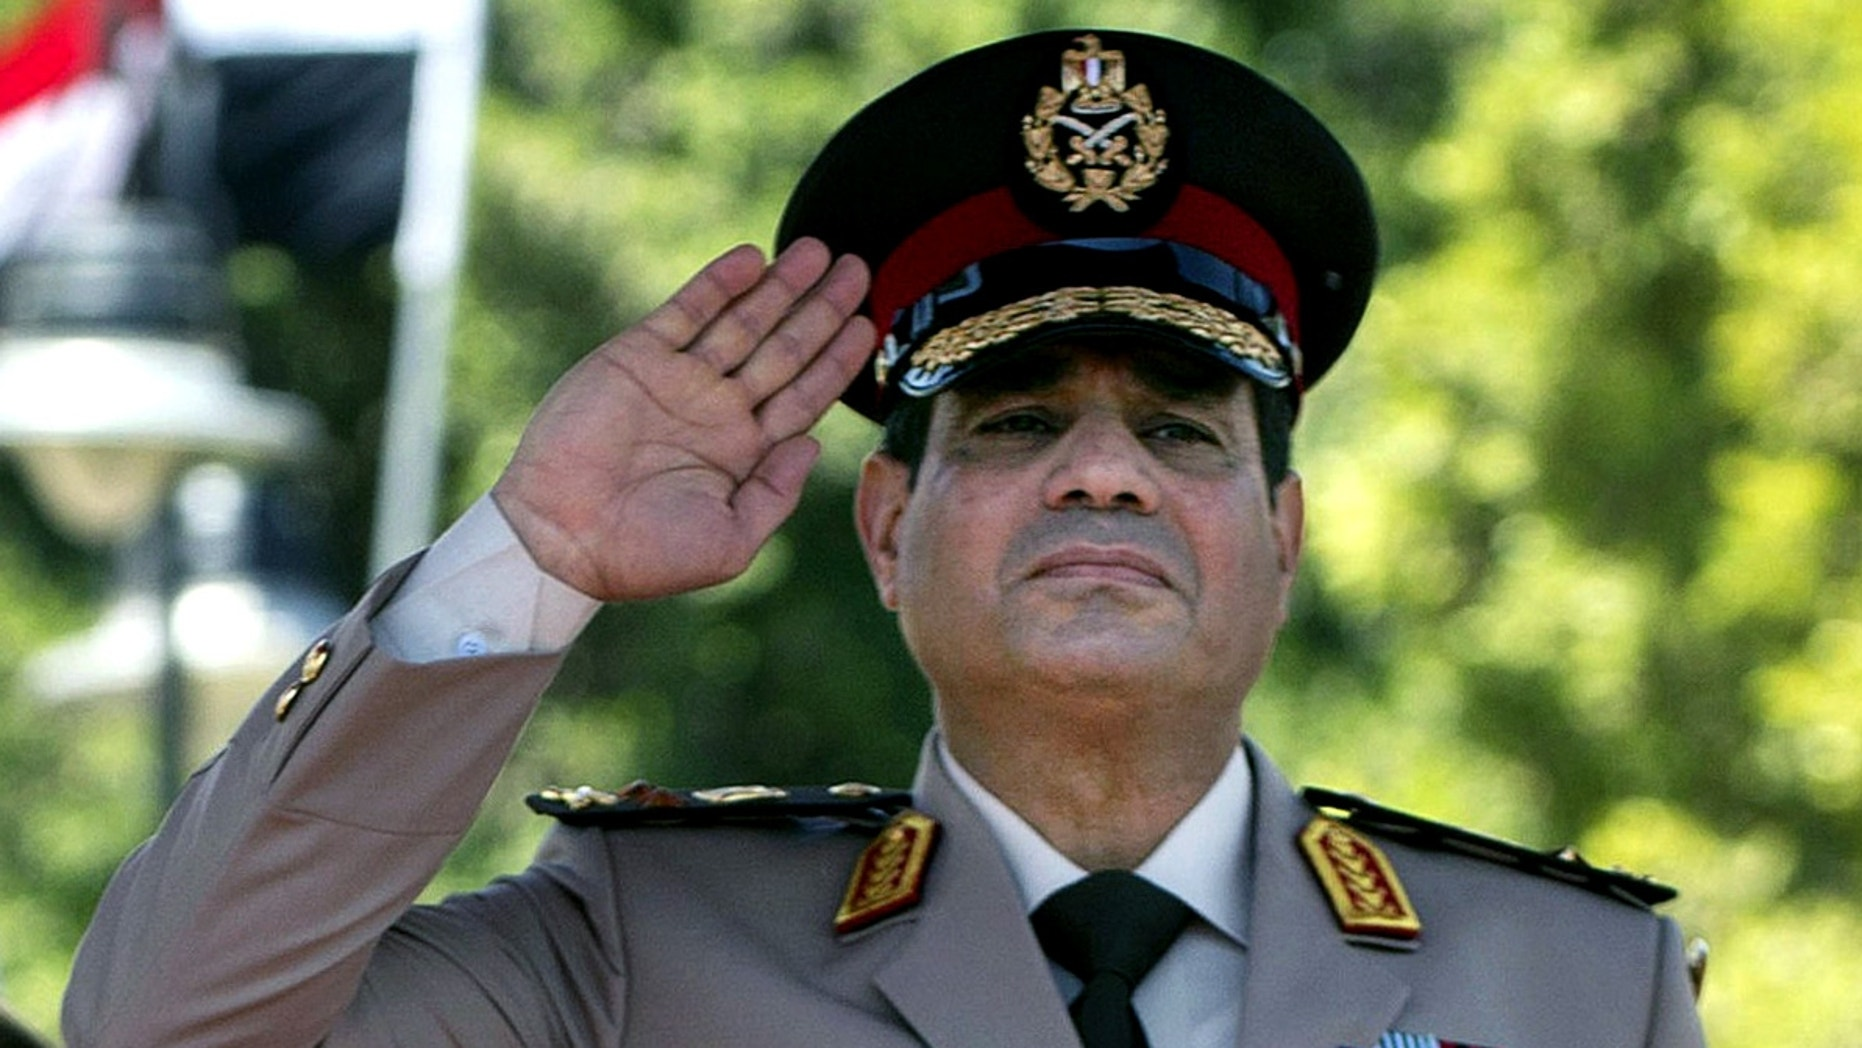 April 24, 2013 - FILE photo of Egyptian Defense Minister Gen. Abdel-Fattah el-Sissi during an arrival ceremony for U.S. Secretary of Defense Chuck Hagel at the Ministry of Defense in Cairo.